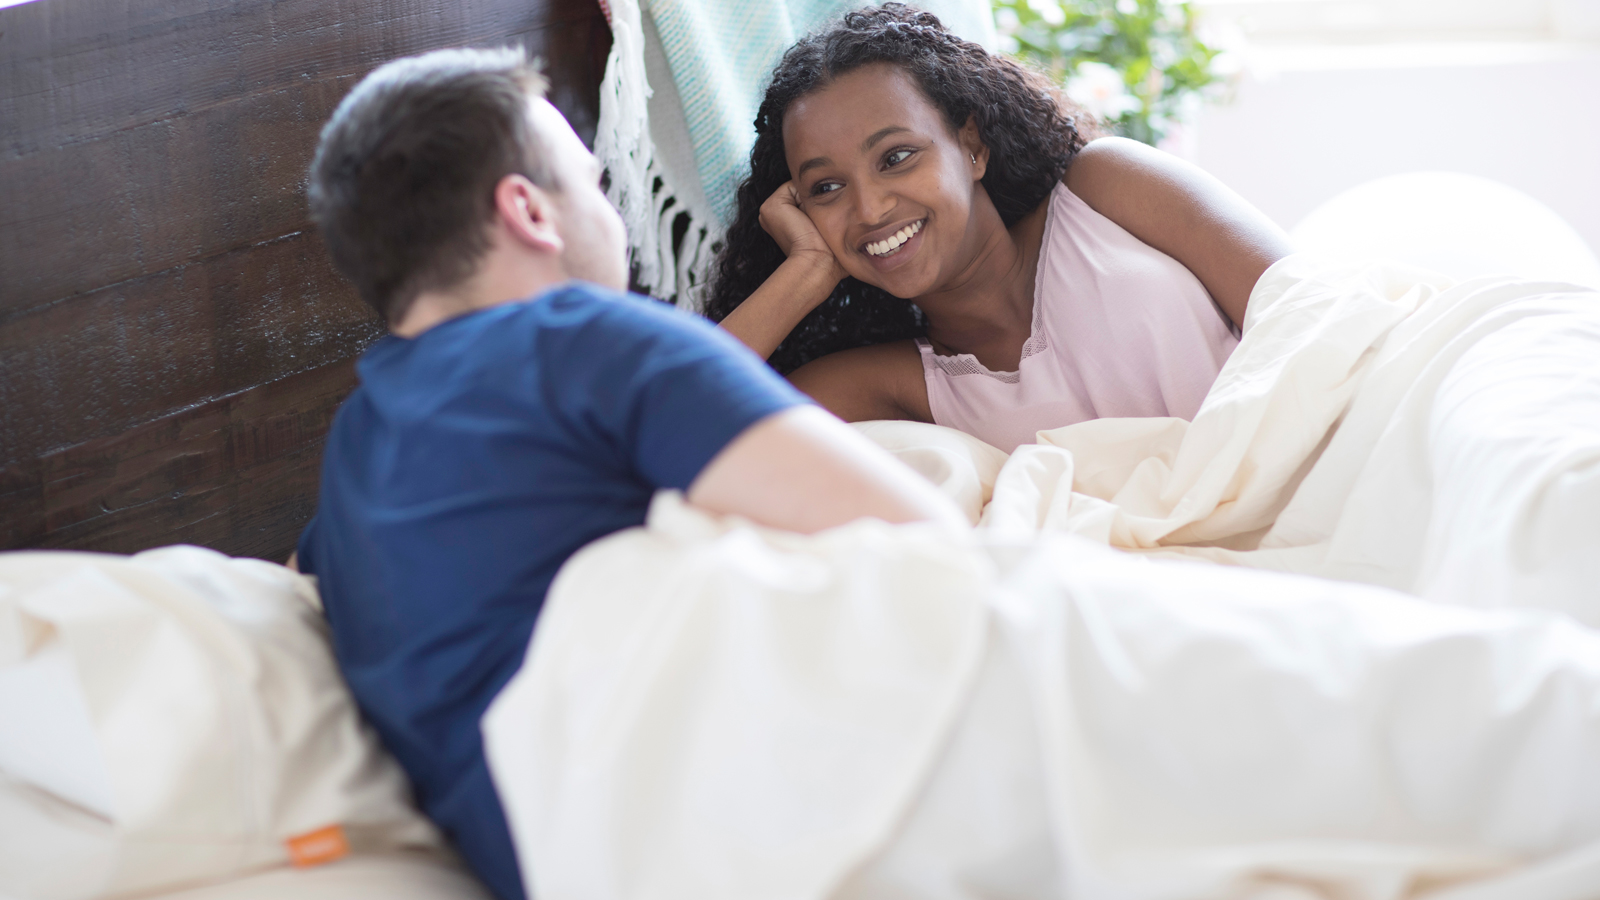 Couple on Mattress with Bedding